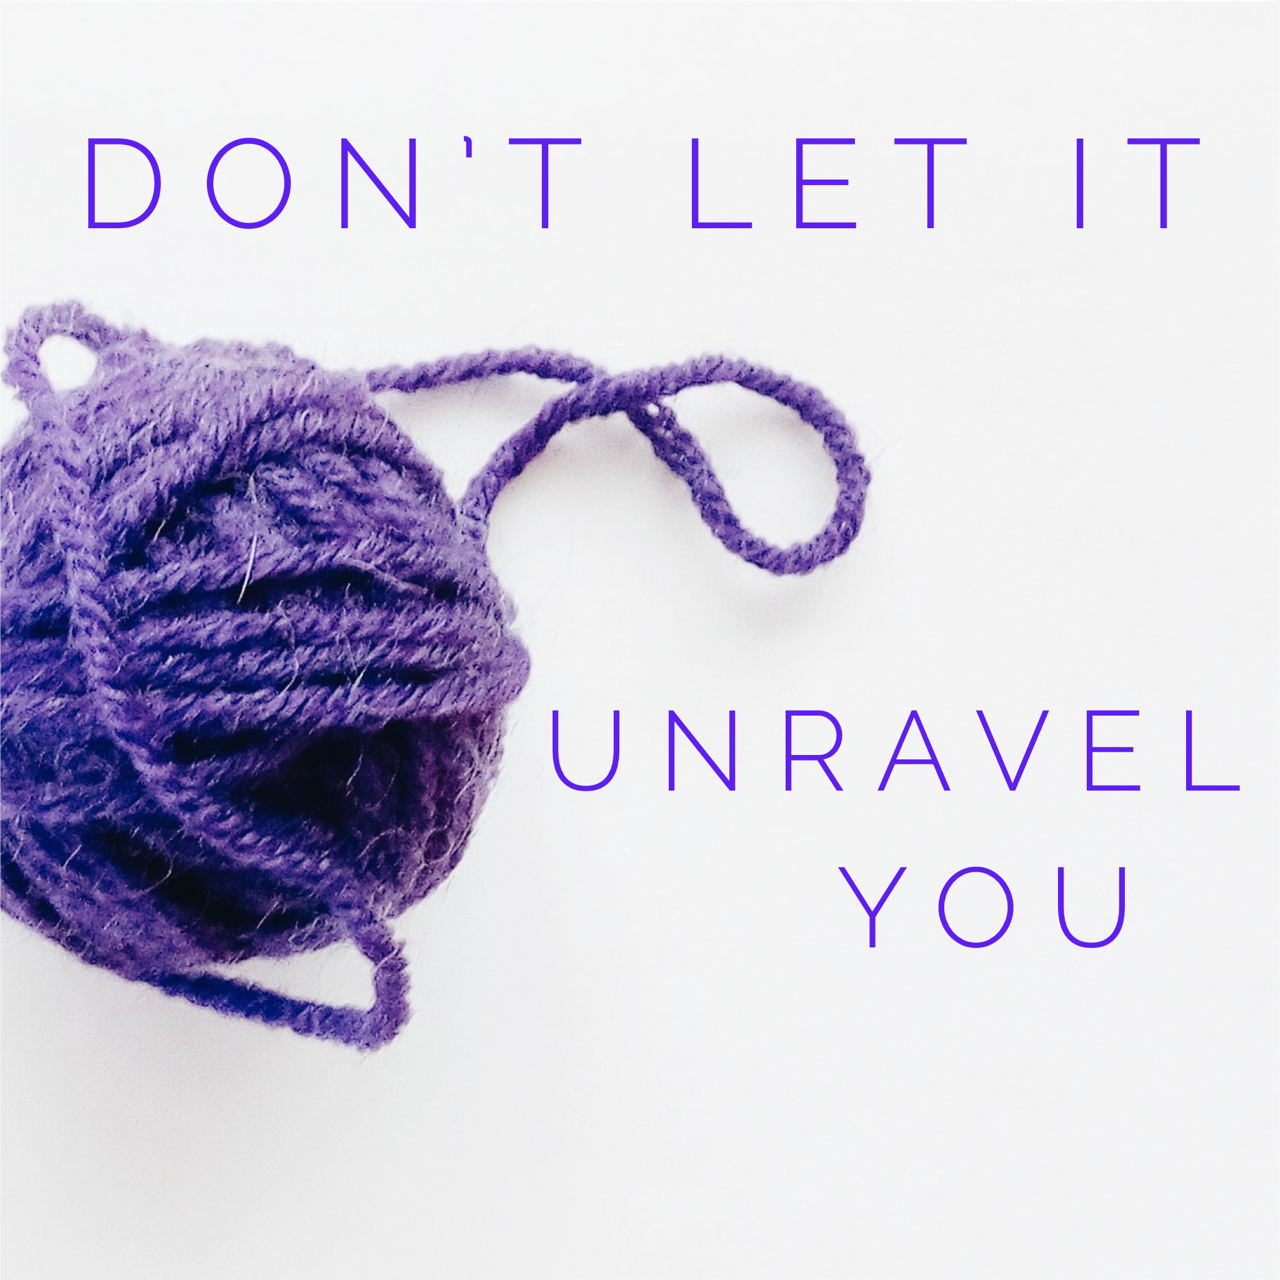 Do Not Let Their Smallness Unravel You